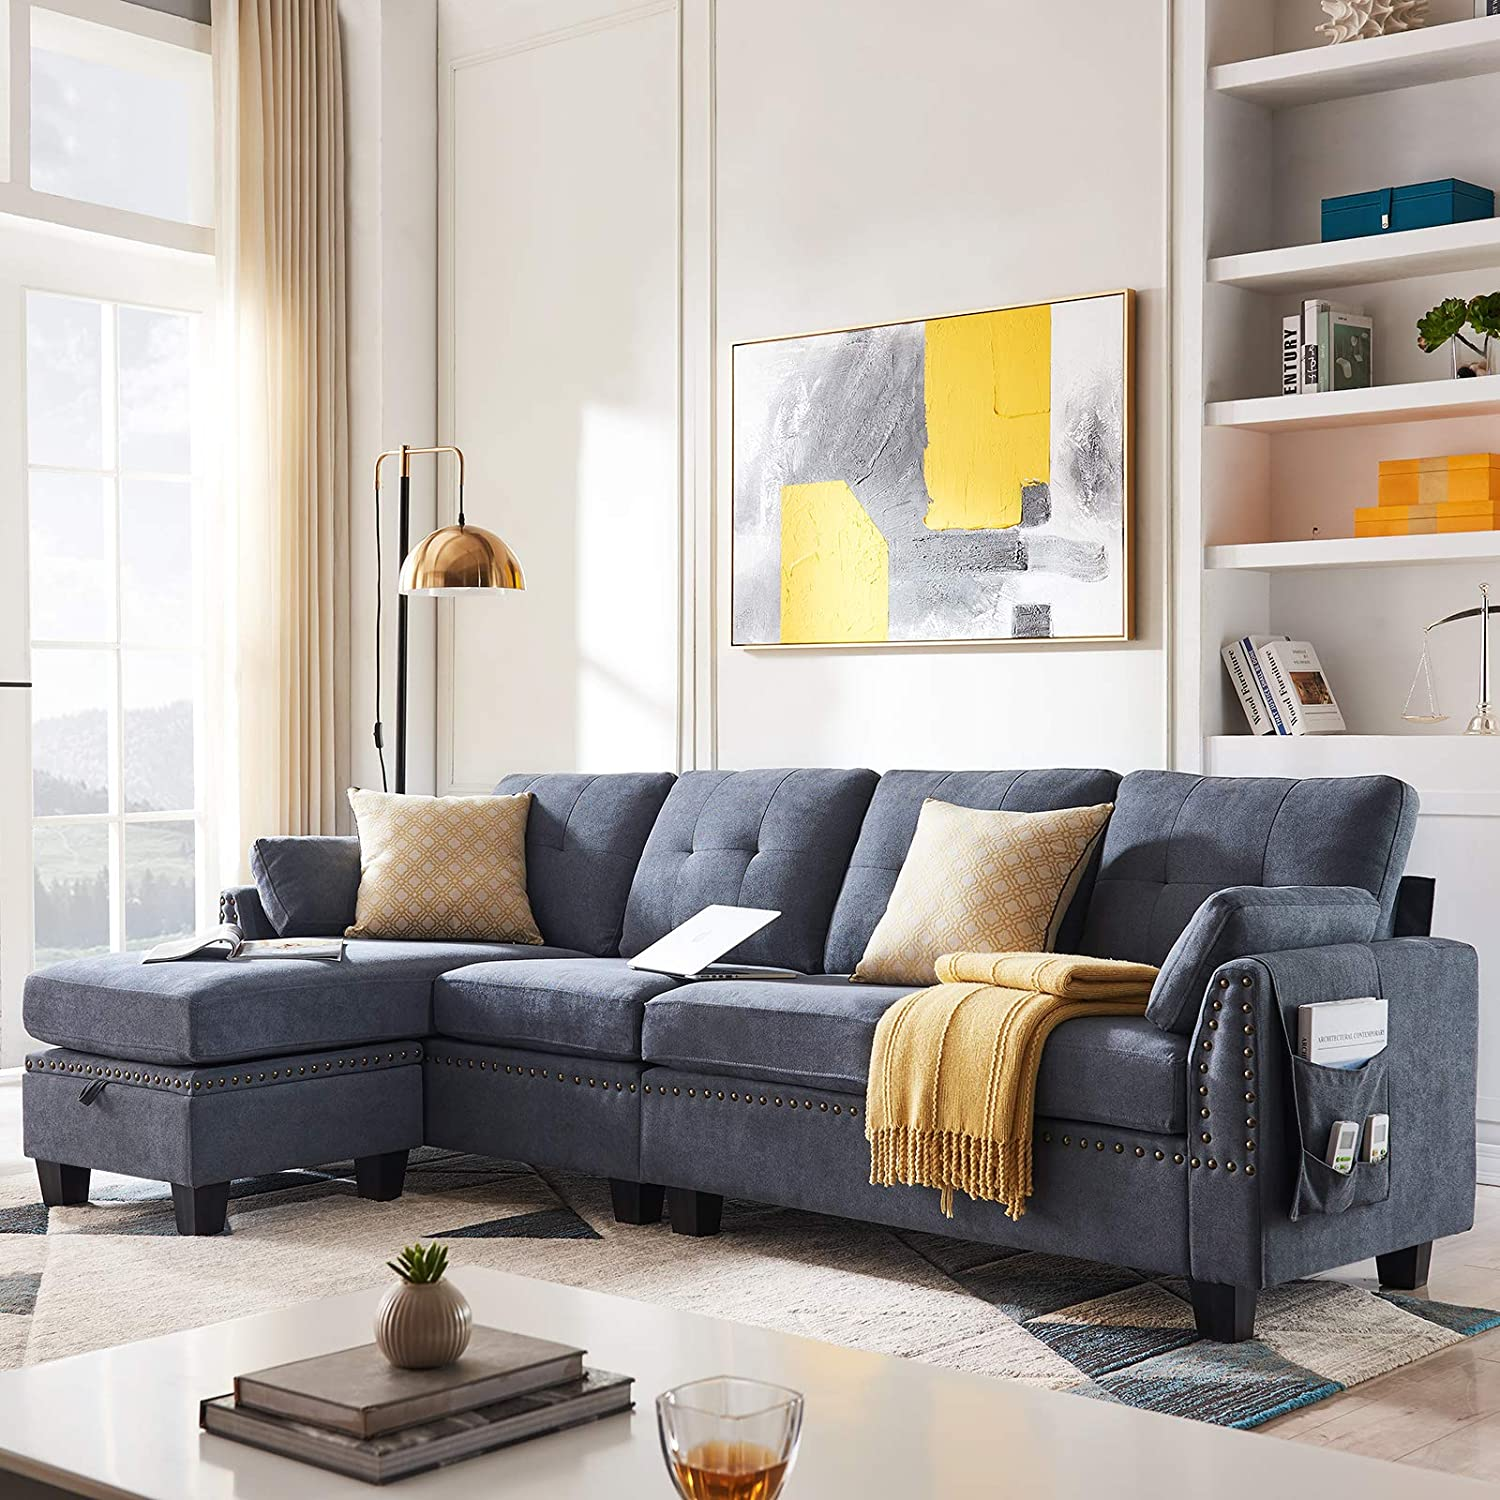 HONBAY Reversible Sectional Sofa Couch for Living Room L-Shape Sofa Couch  3-seat Sofas Sectional for Apartment Bluish Grey